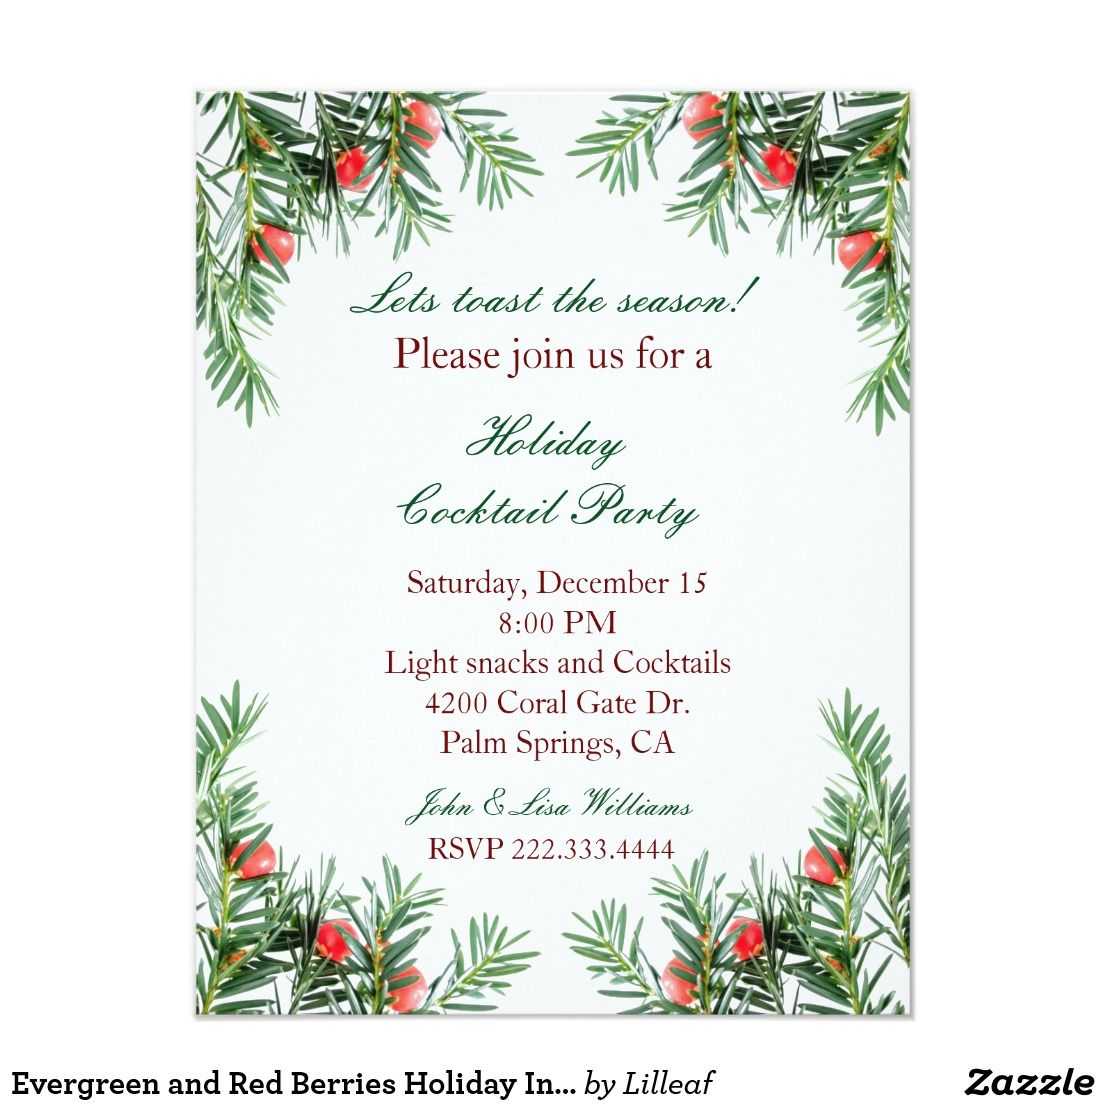 evergreen and red berries christmas new year winter holiday invitation an elegant invitation for any winter holiday party it features a border with